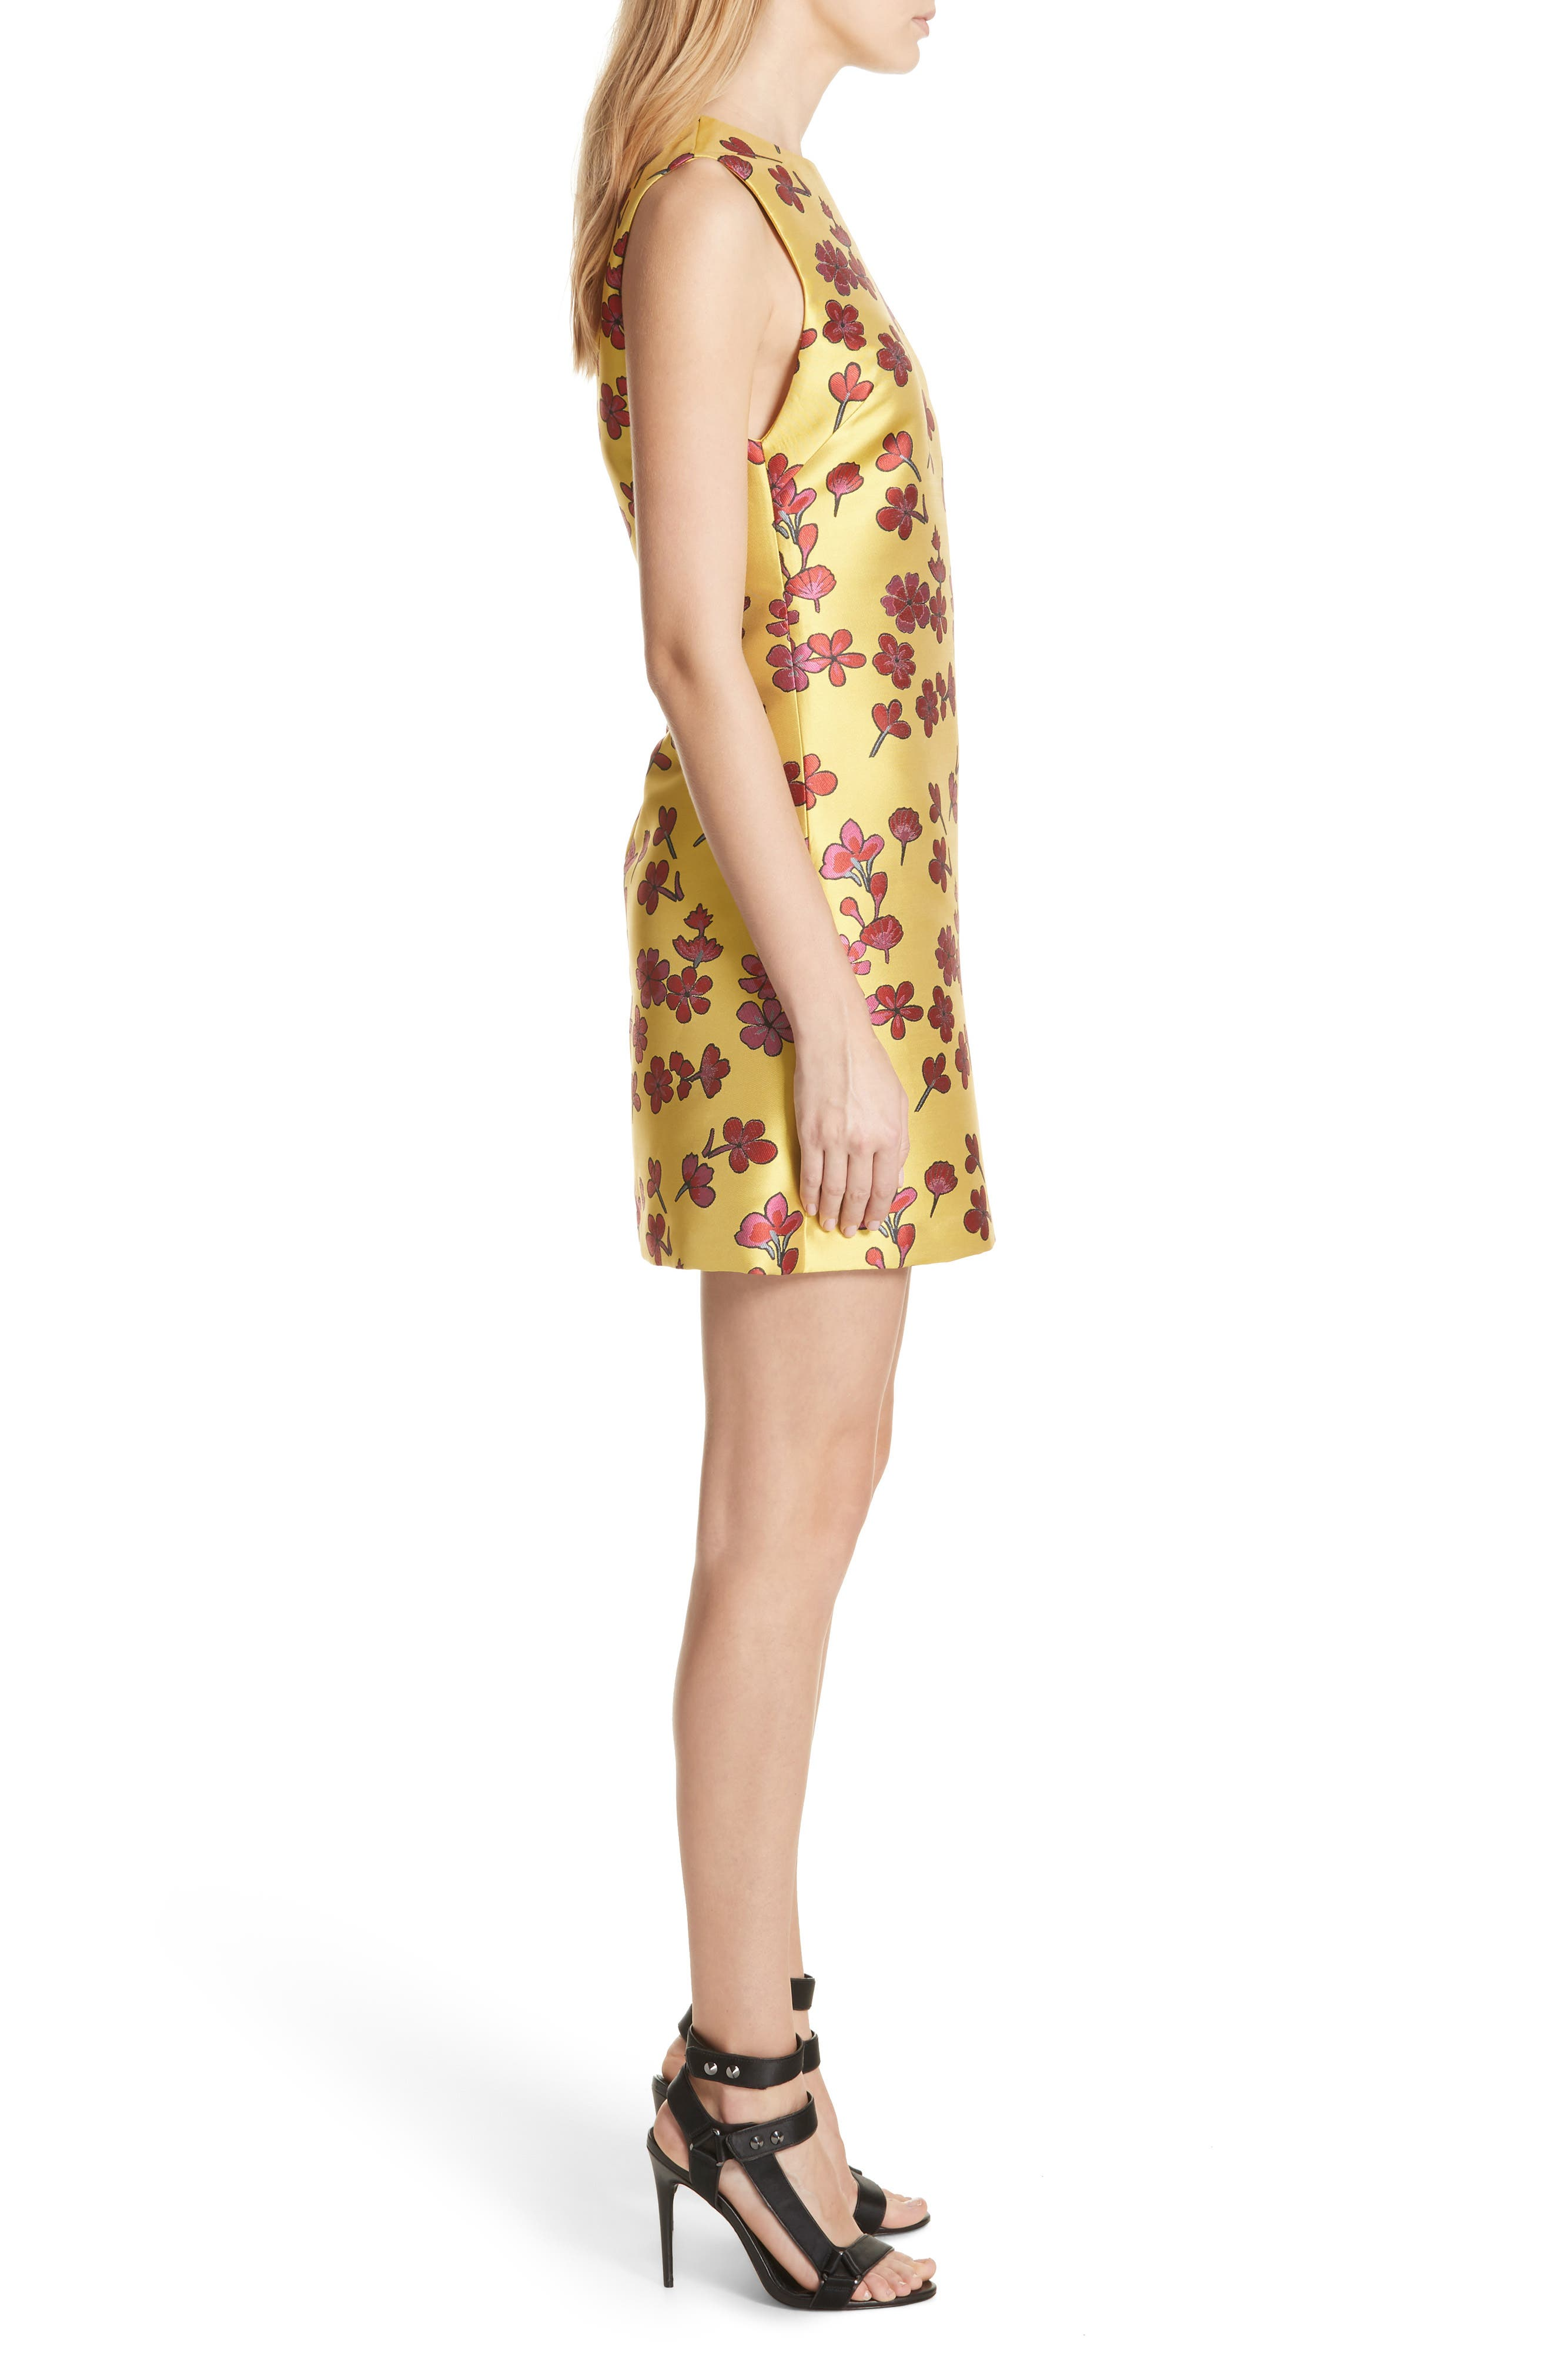 Coley Floral A-Line Shift Dress,                             Alternate thumbnail 3, color,                             Sunflower/ Poppy